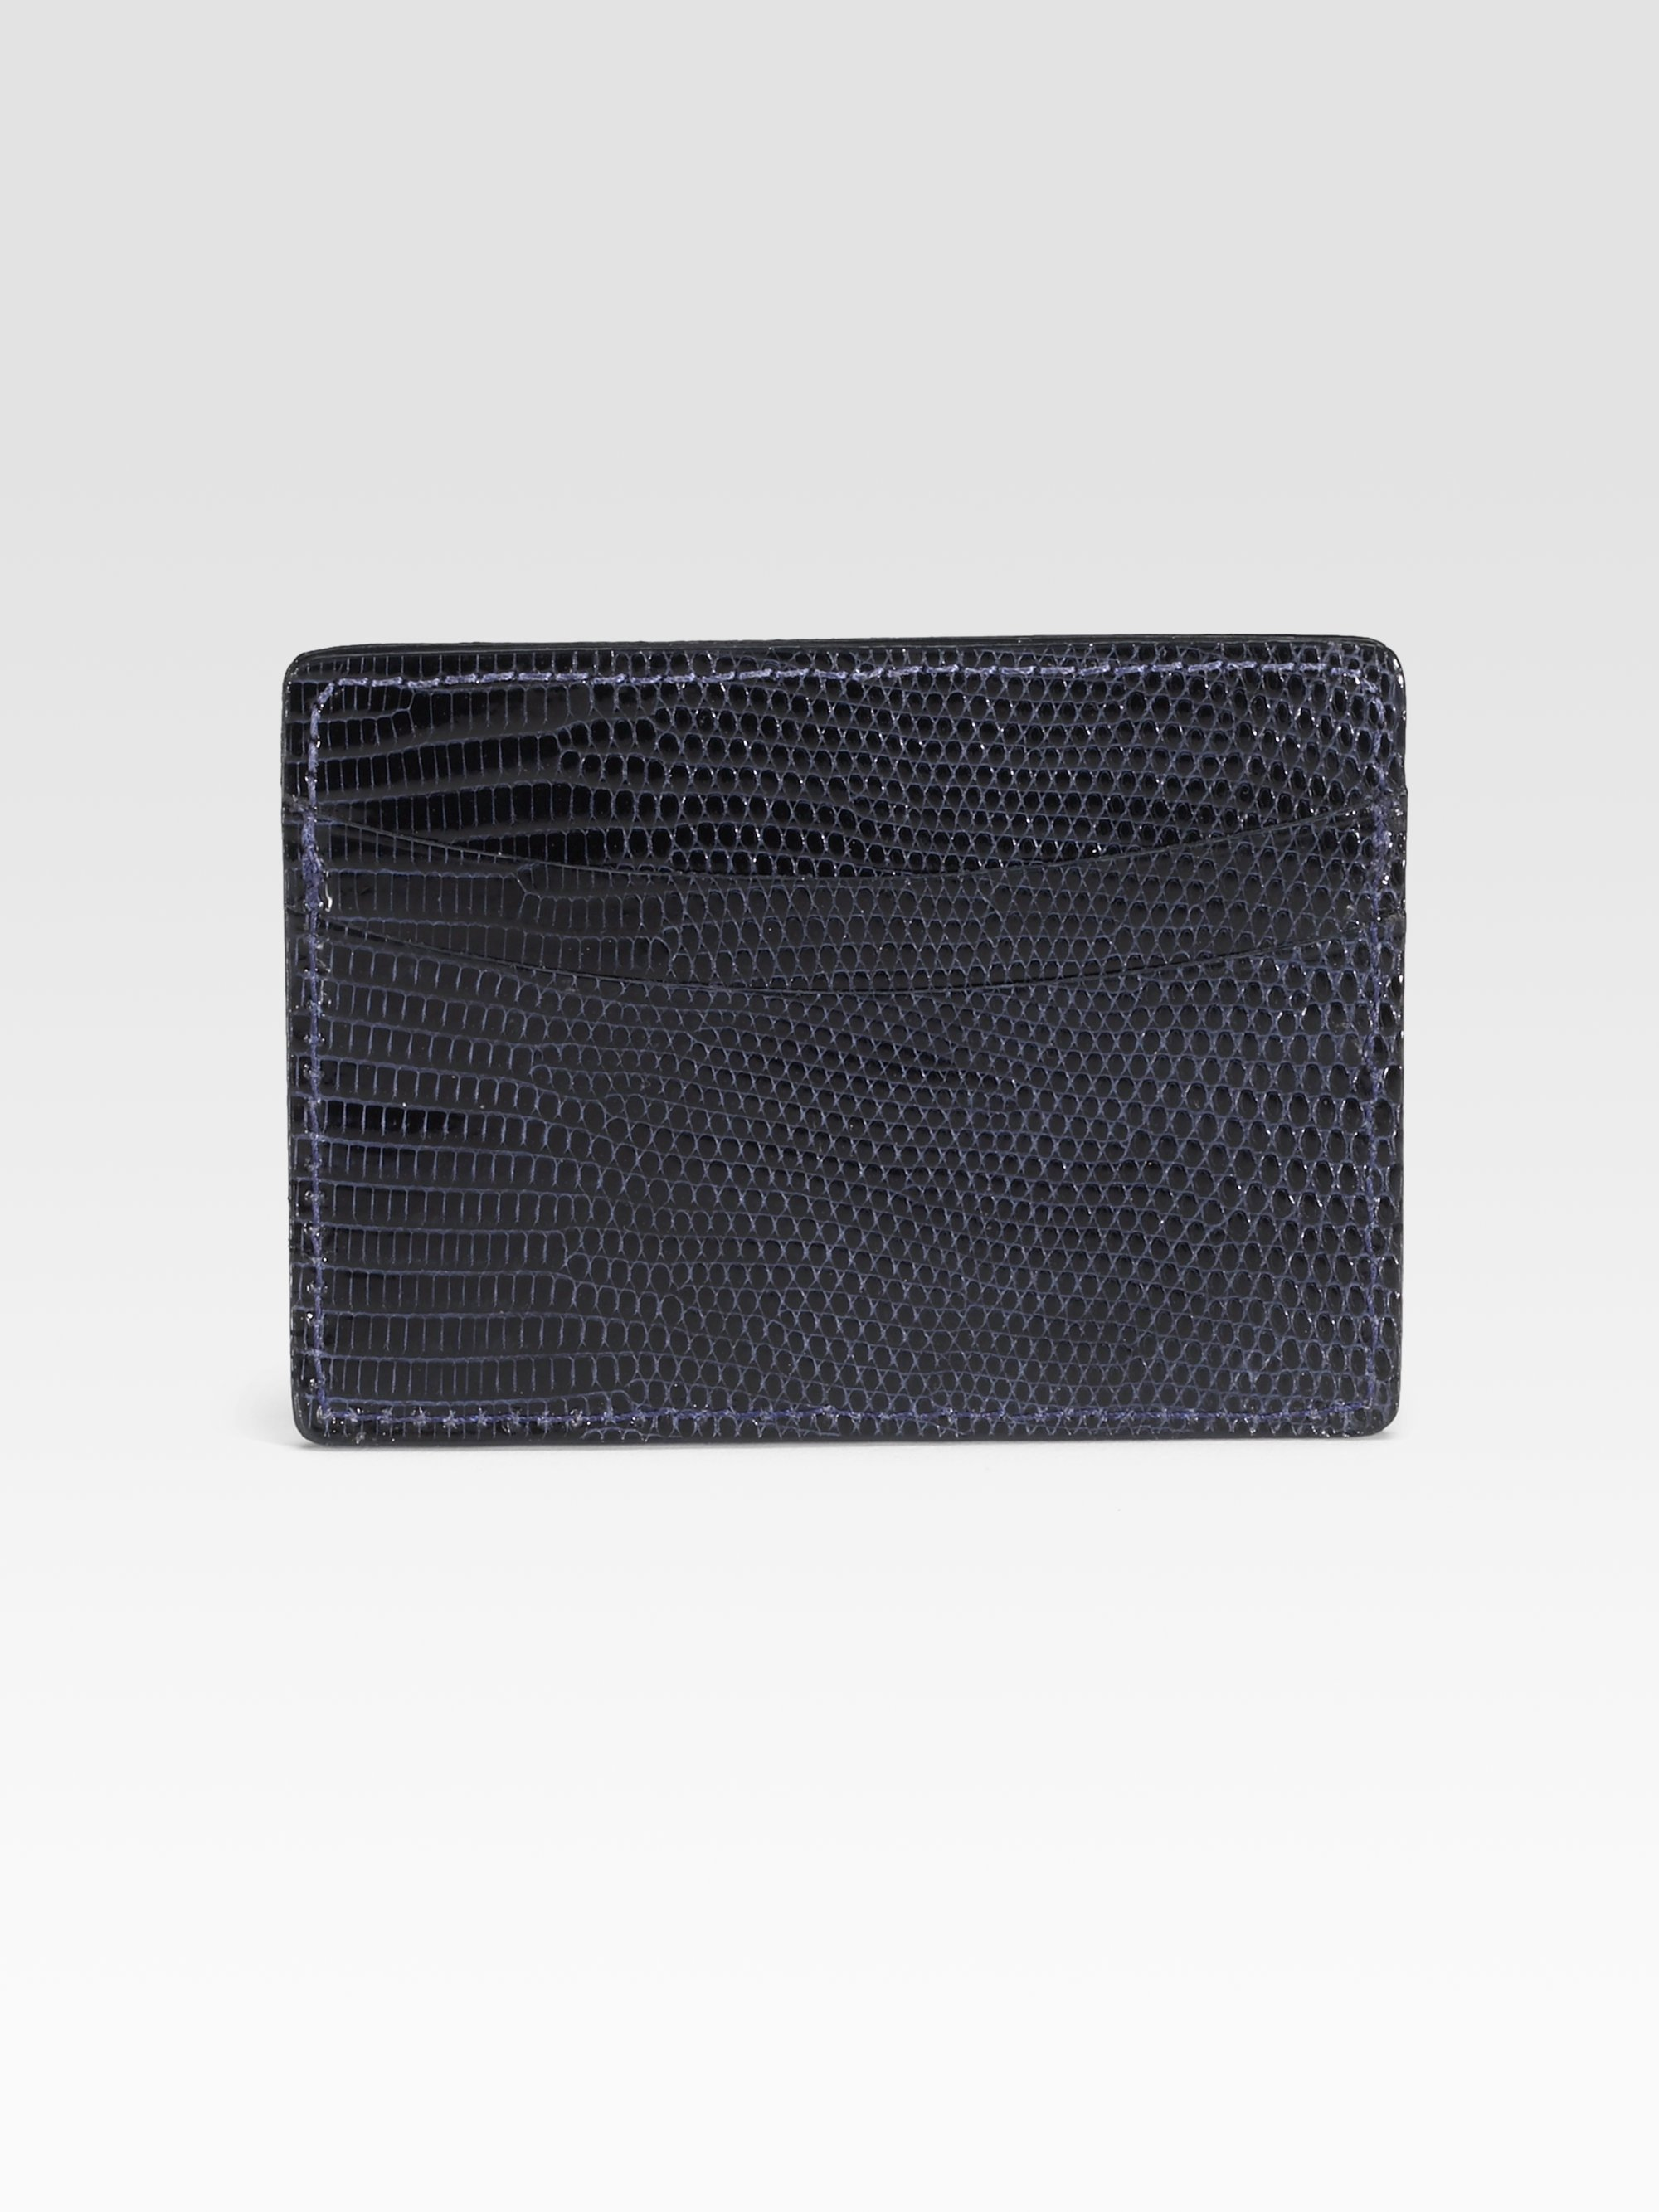 7b849729130b Fendi Card Holder Saks alan-ayers.co.uk